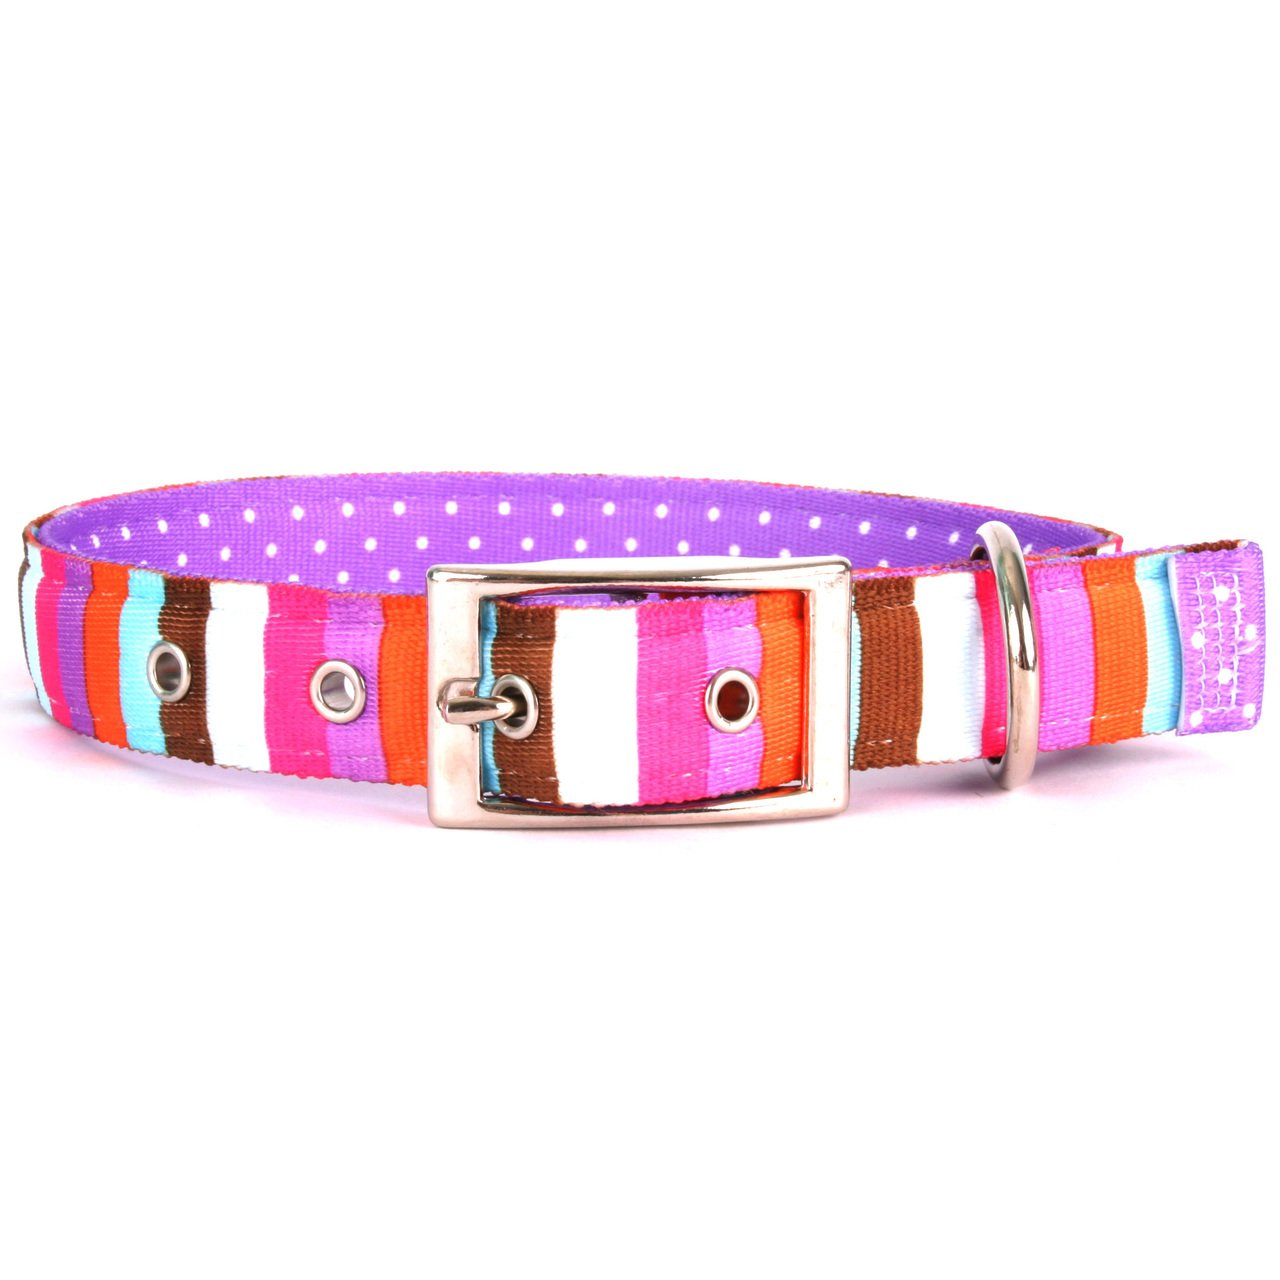 Yellow Dog Design Multi-Stripe Uptown Dog Collar, Medium-1'' Wide and fits Neck Sizes 15 to 18.5''